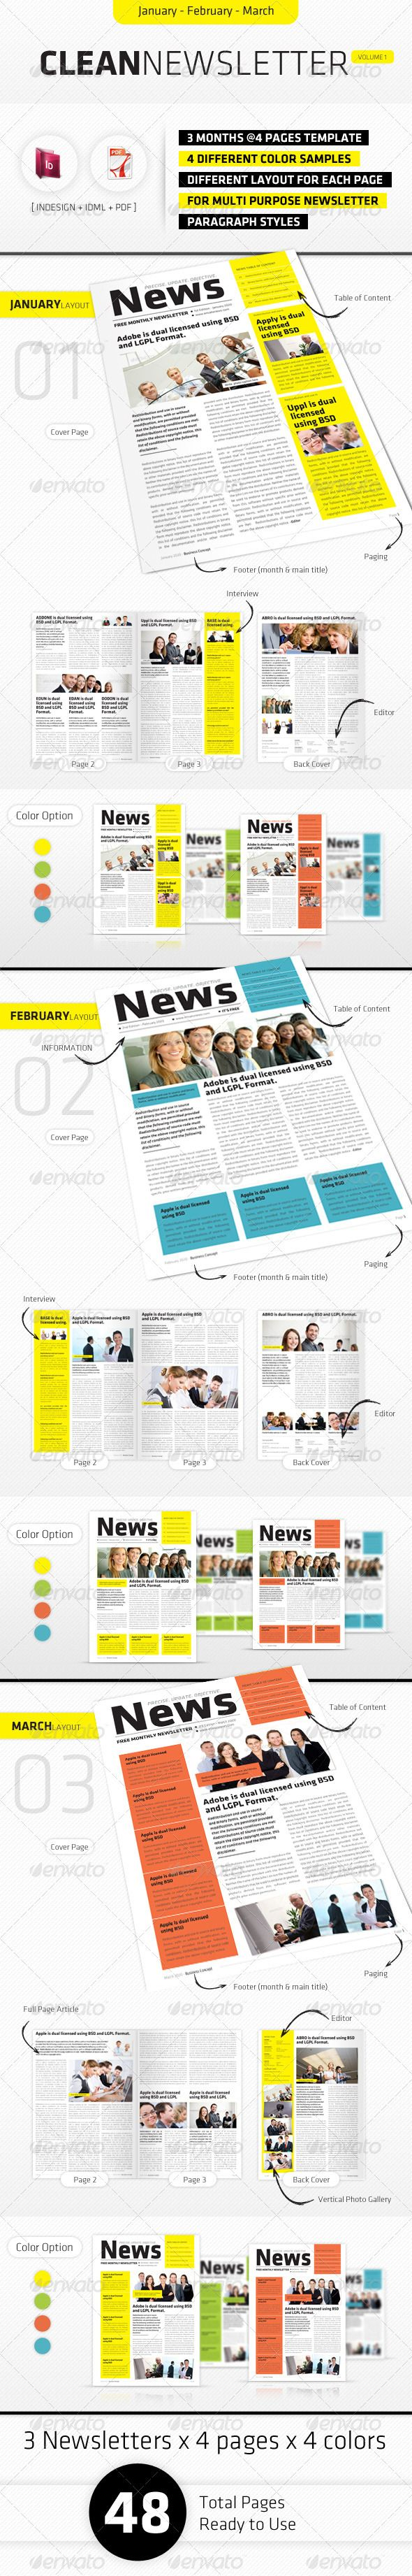 January - March Clean Newsletter Template InDesign INDD. Download here: http://graphicriver.net/item/january-march-clean-newsletter-v1/3450741?s_rank=421&ref=yinkira